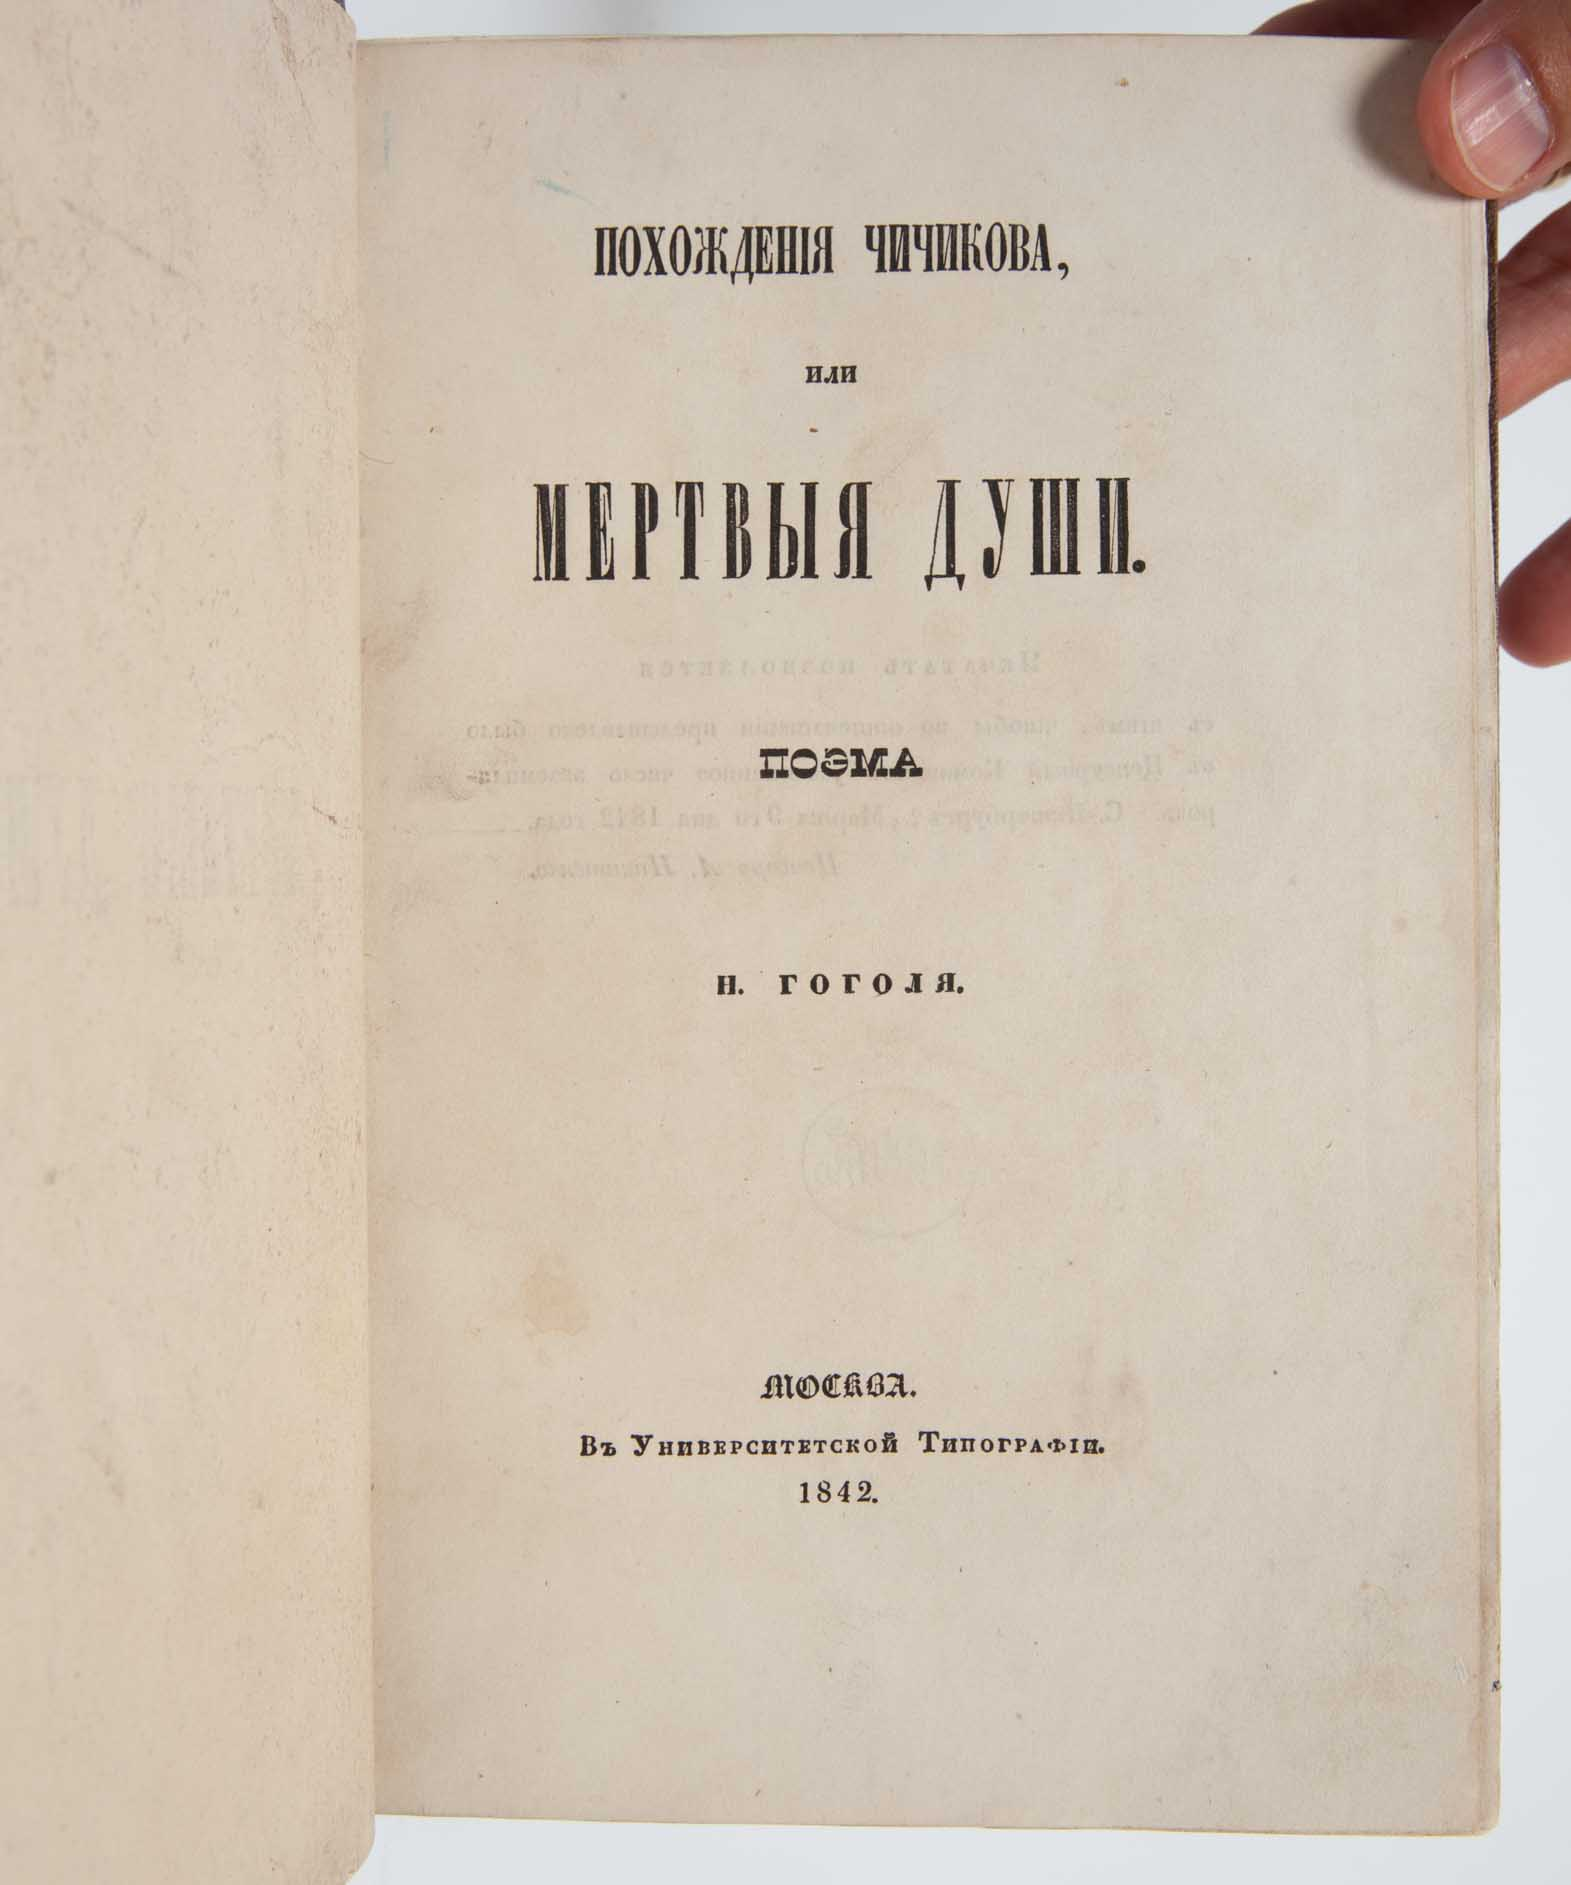 The image of Chichikov - the first entrepreneur in Russian literature 3